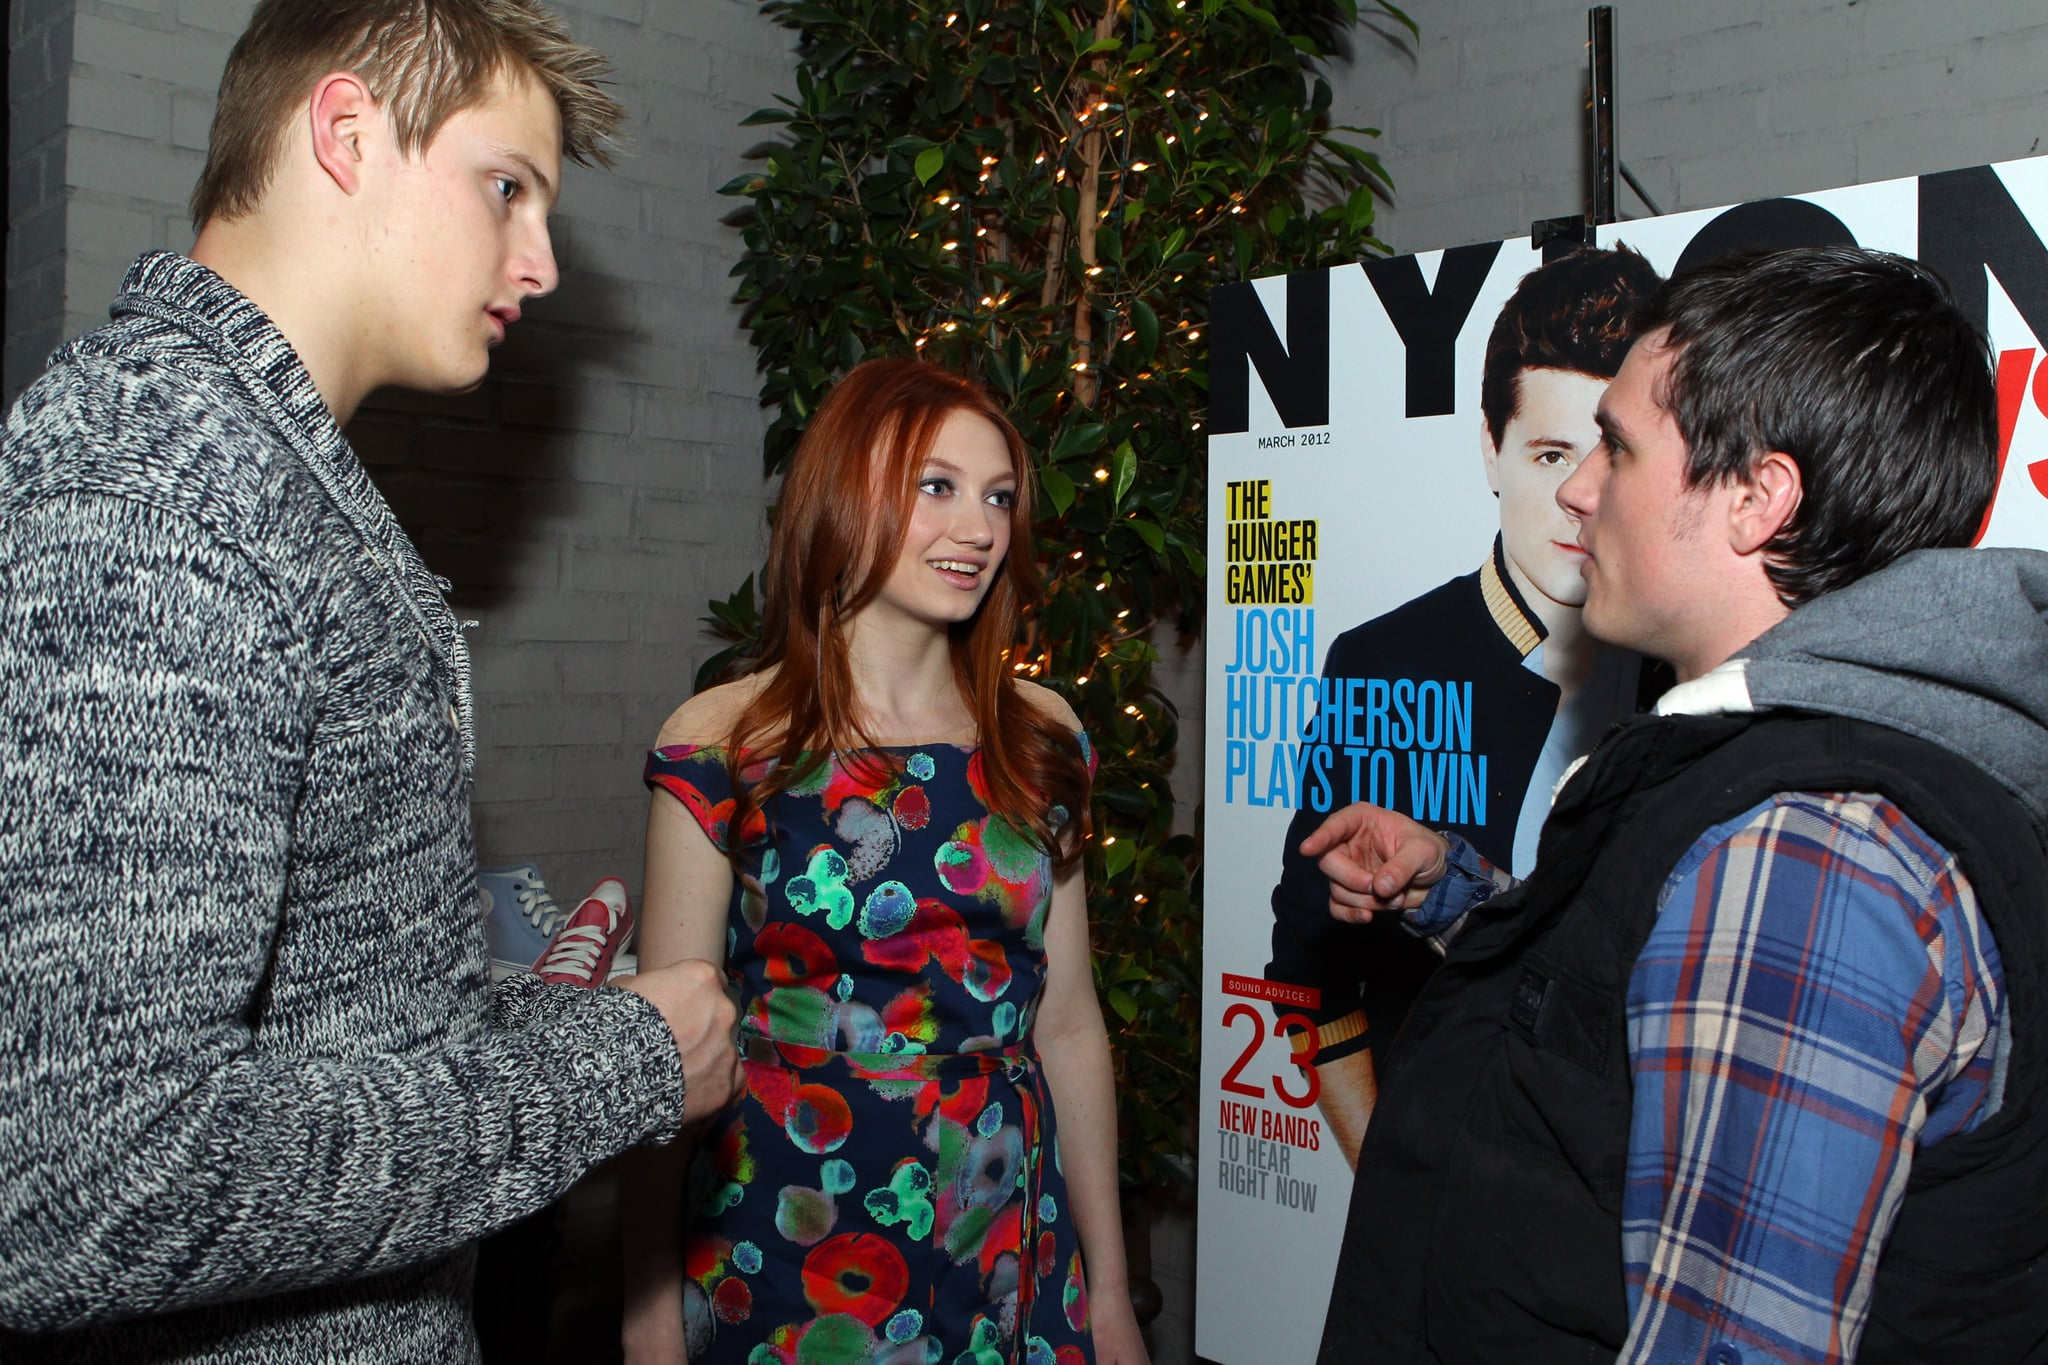 Josh Hutcherson had a chat with his costars Alexander Ludwig and Jacqueline Emerson before sitting down for dinner.